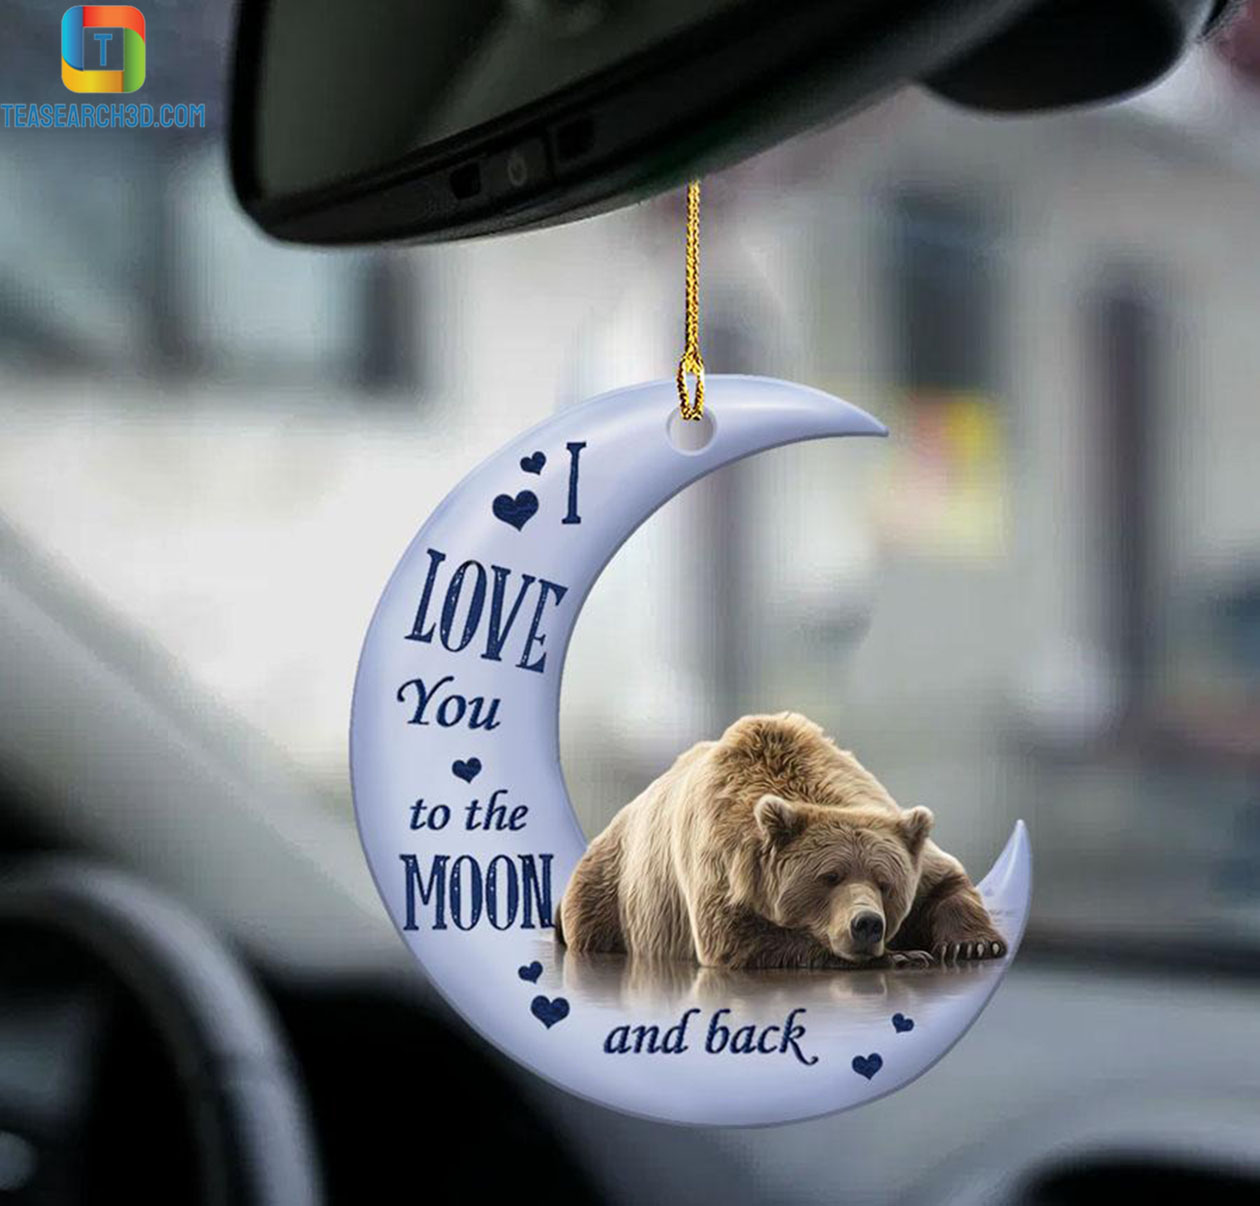 Grizzly bear I love you to the moon and back car hanging ornament 1